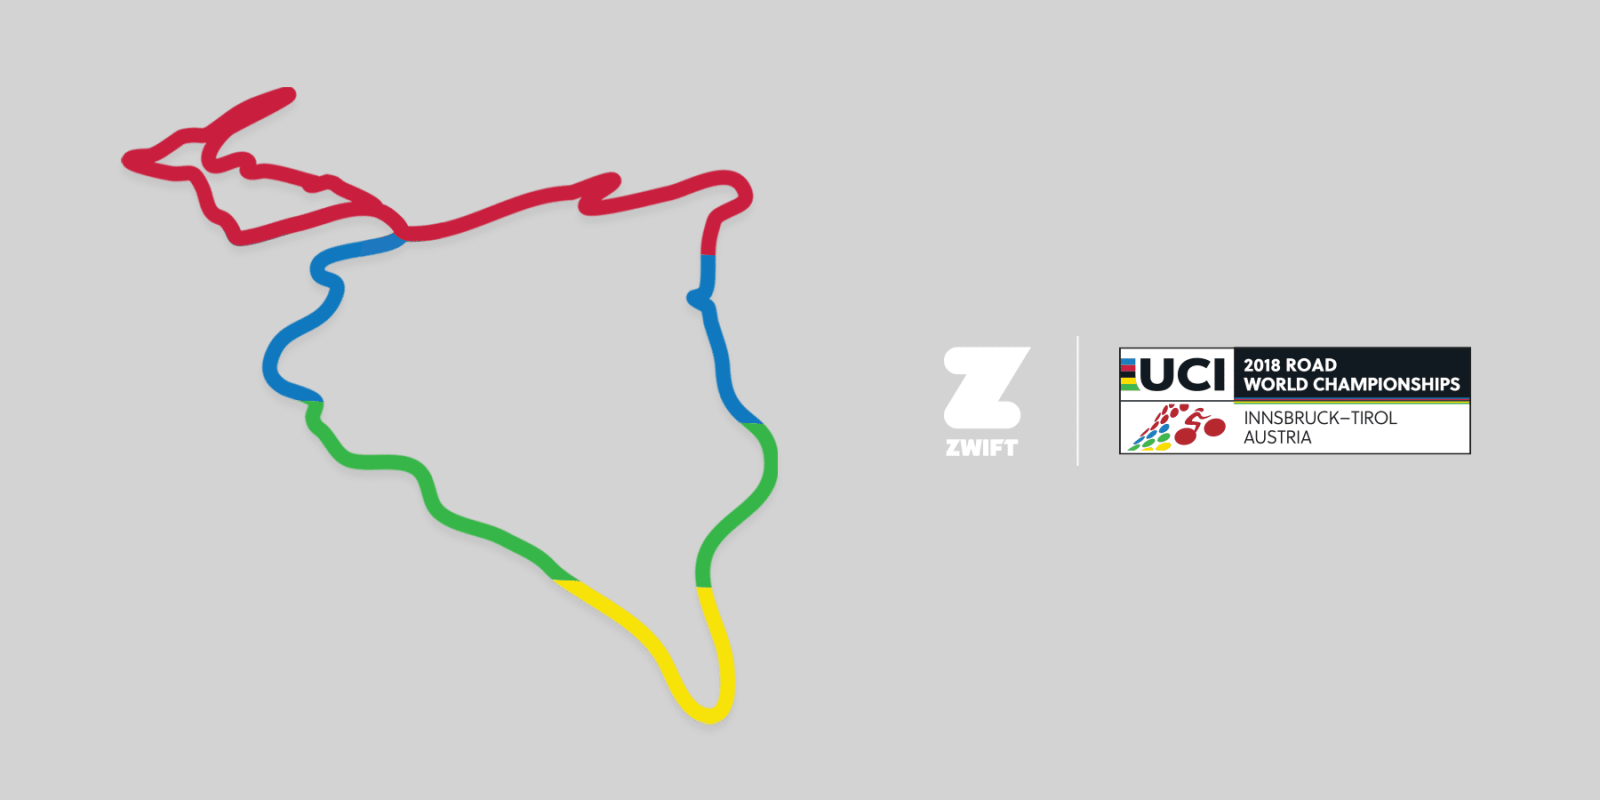 Zwift Announces 2018 Innsbruck UCI Road World Champion Course